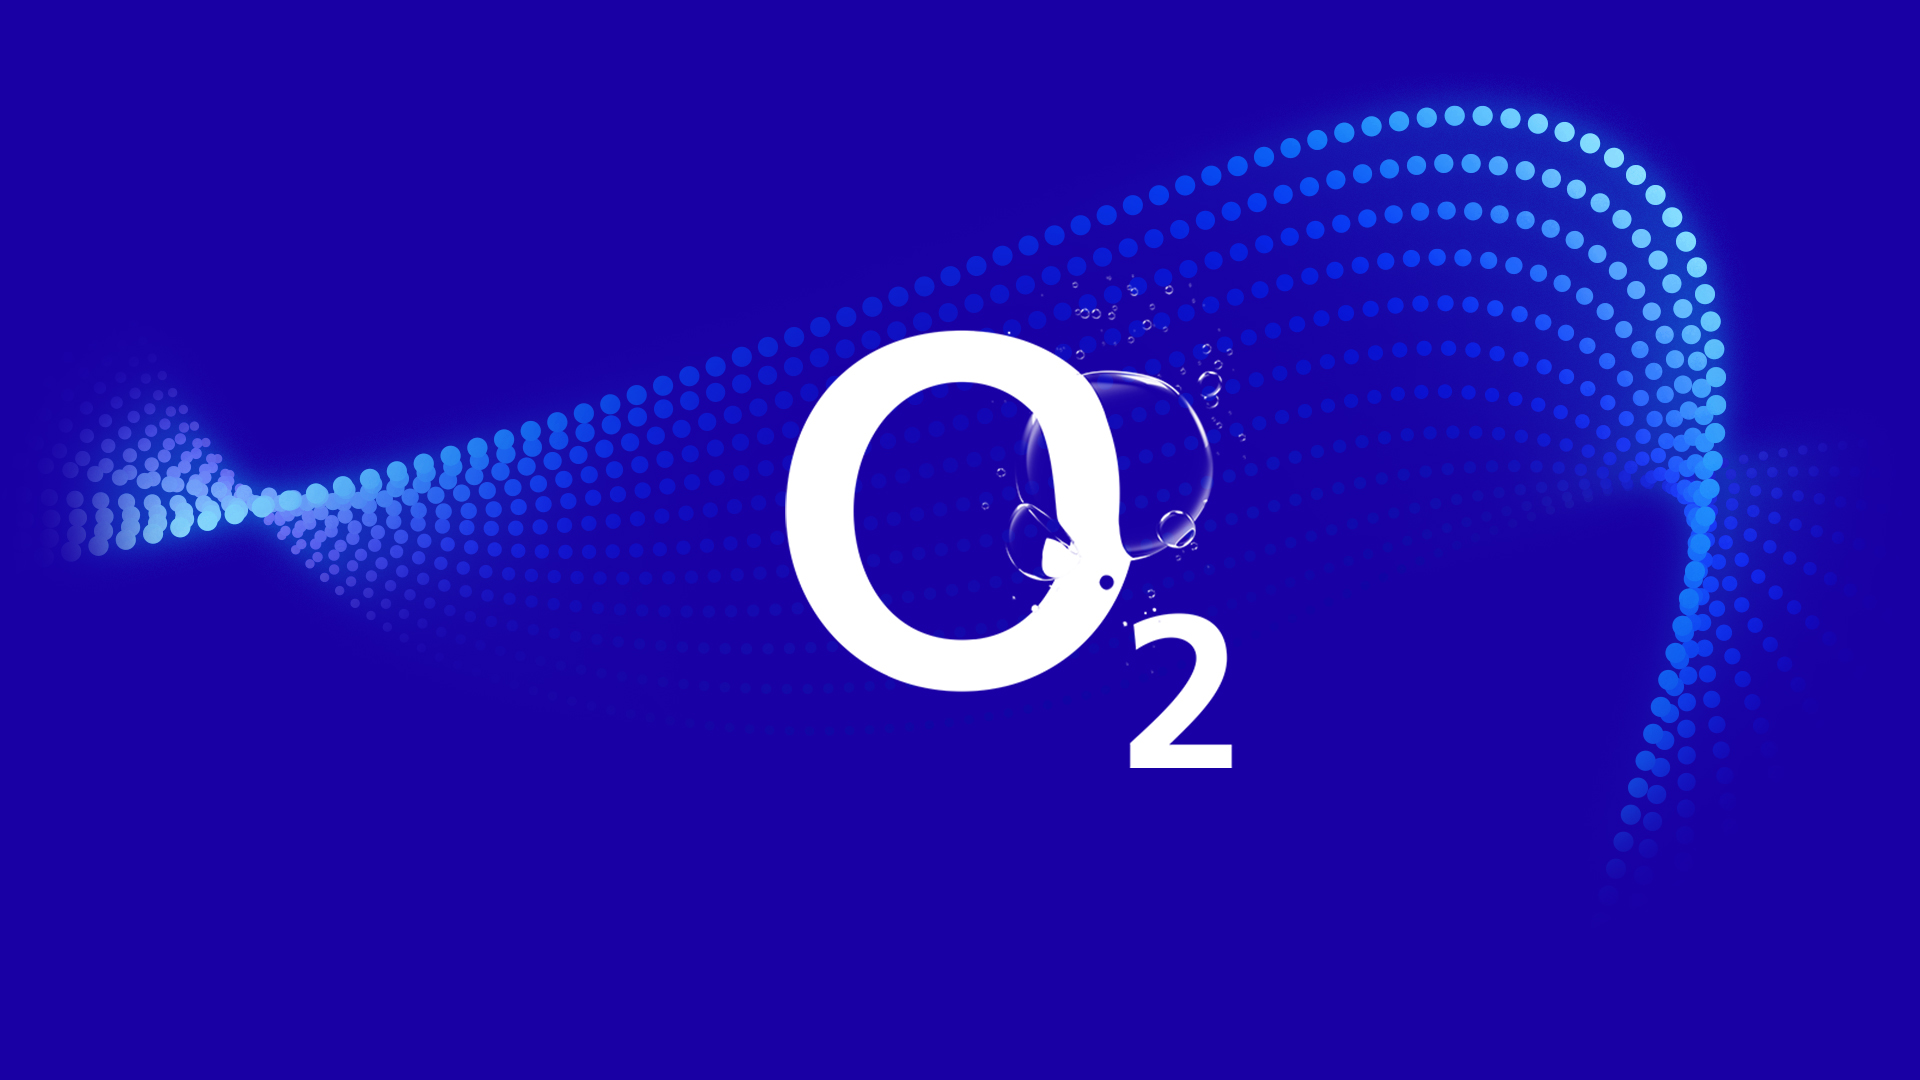 MassiveMusic Brings O2's Sonic Brand Identity to Life